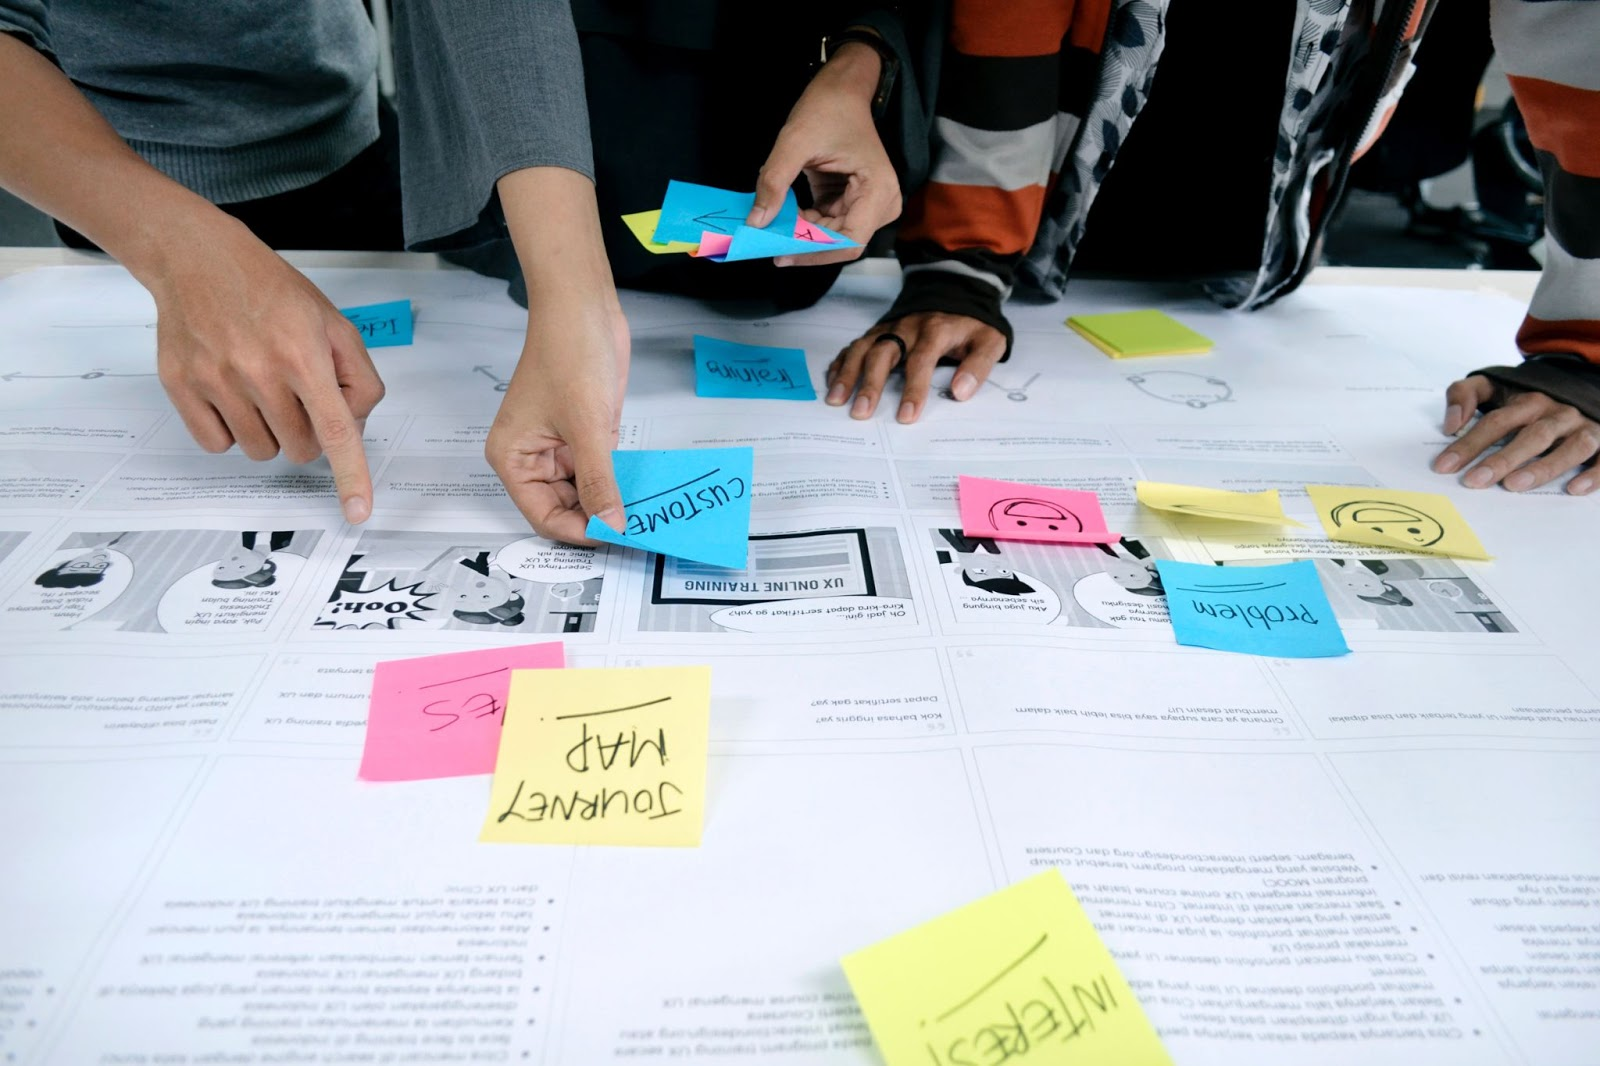 UX research process using post-it